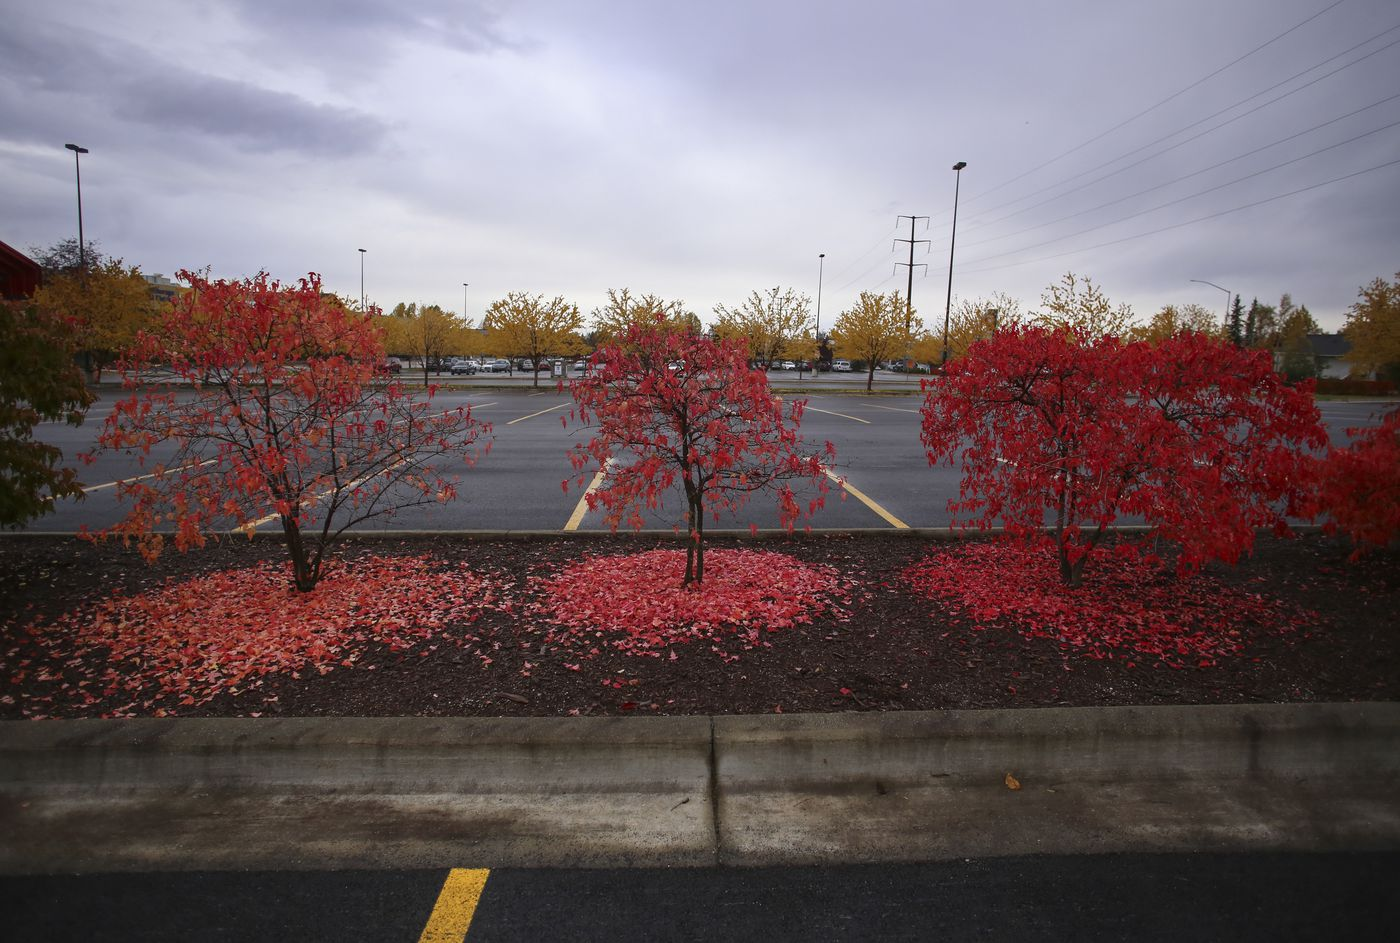 Trees lose their leaves in a section of parking lot landscaping outside the Anchorage School District Education Center on Sept. 26, 2020. (Emily Mesner / ADN)